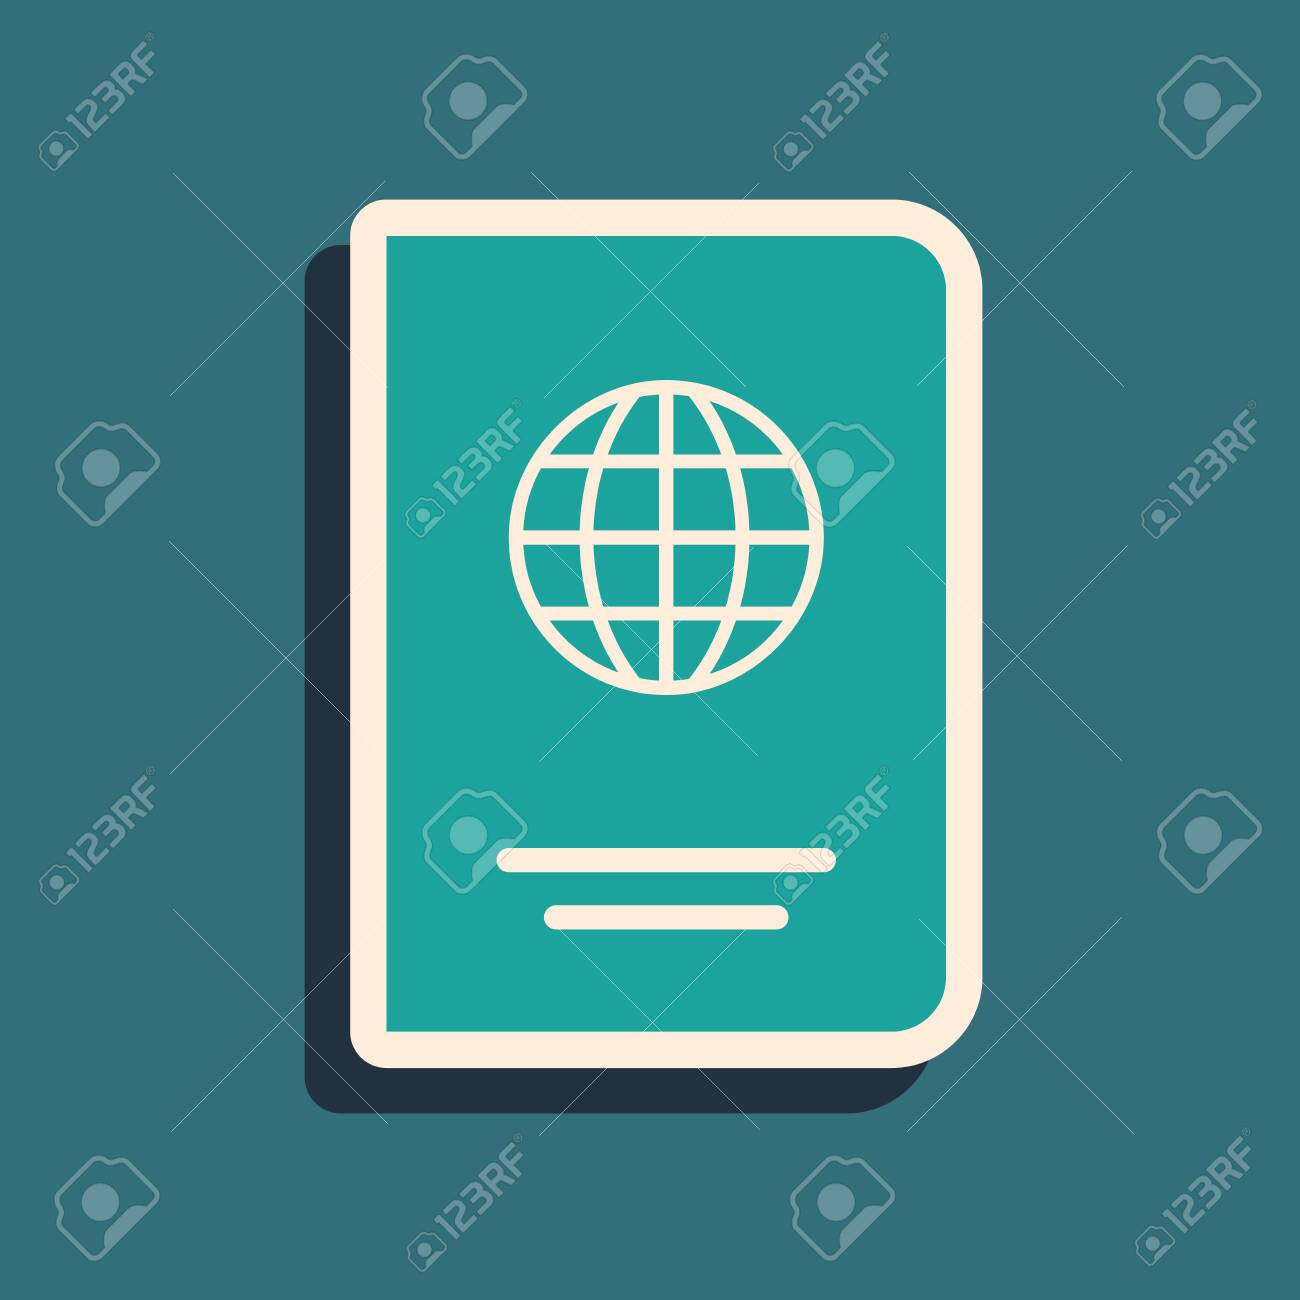 Green Passport with biometric data icon isolated on blue background